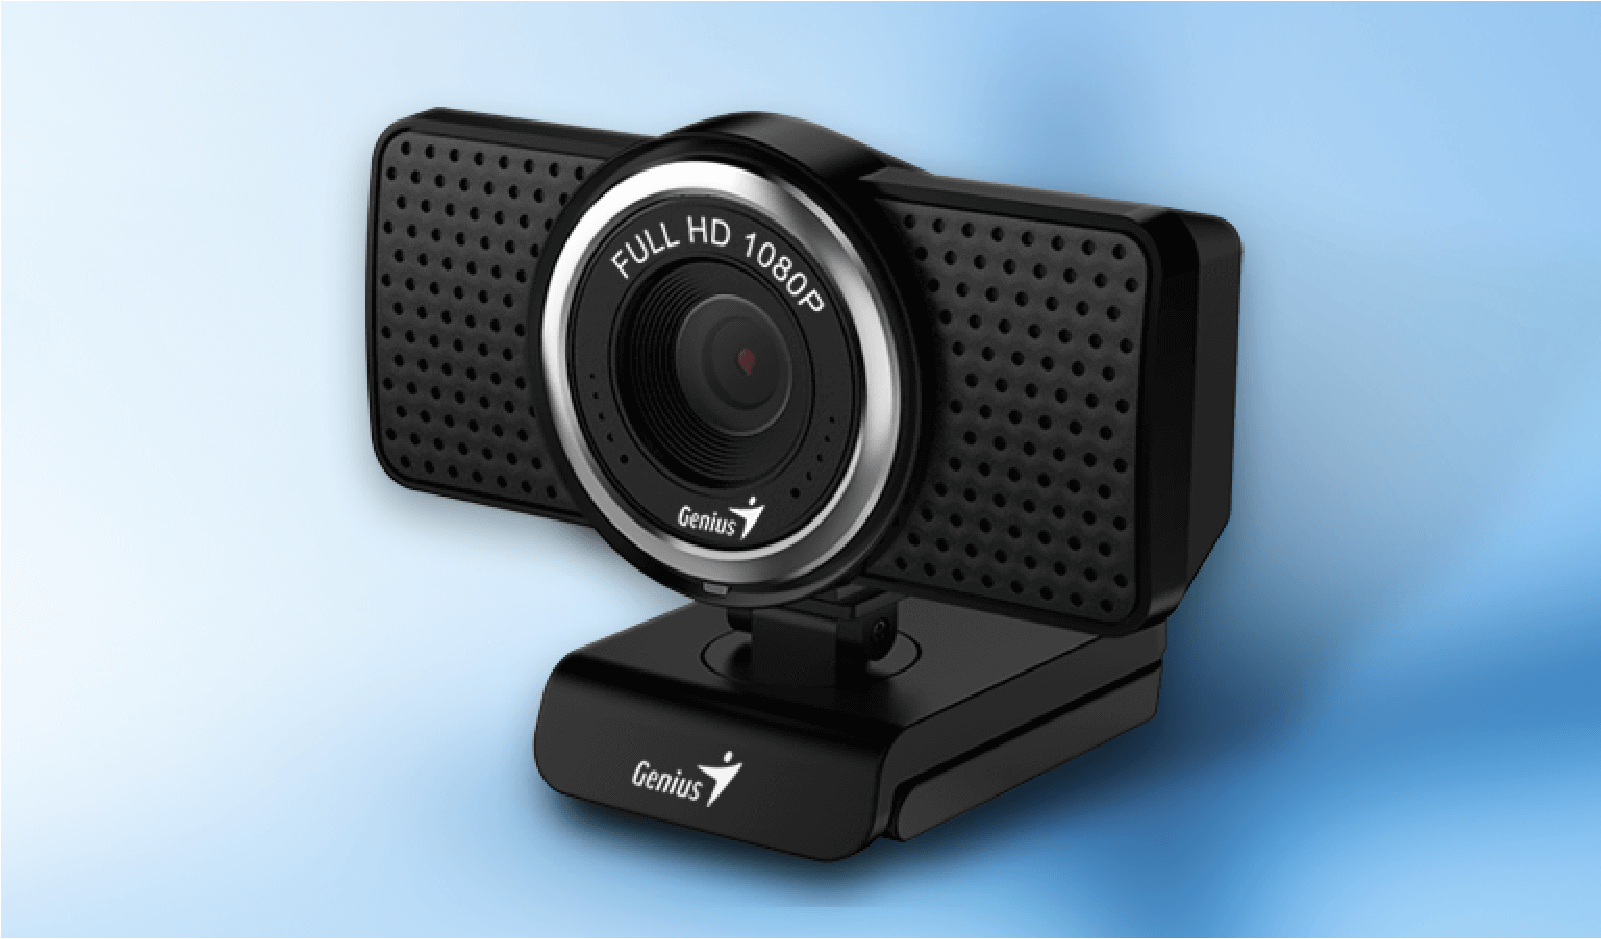 bf49219ce6b ECam 8000 is a stunning sharp and full HD 1080p WebCam.